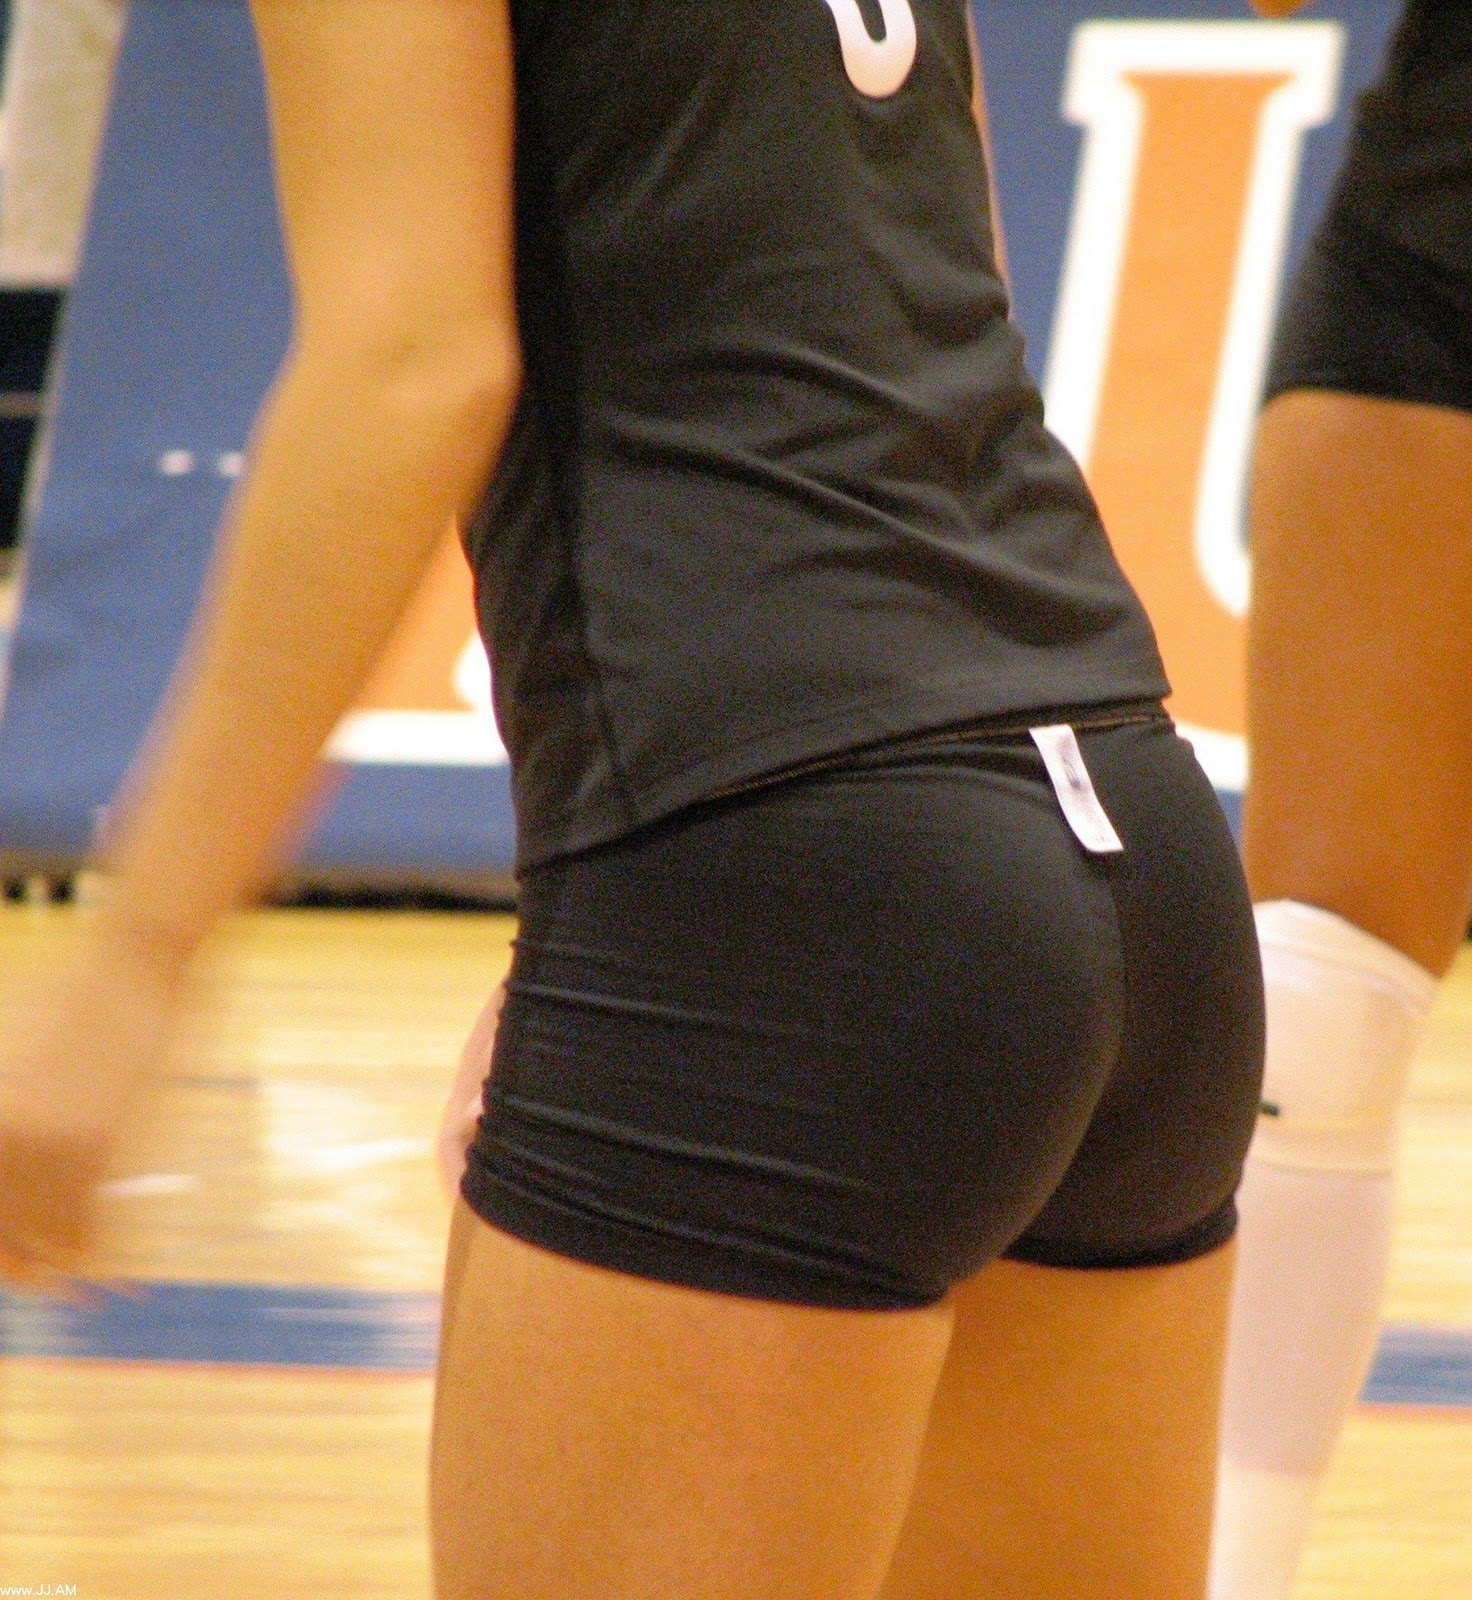 Check the laundry instructionsWomen In Volleyball Shorts